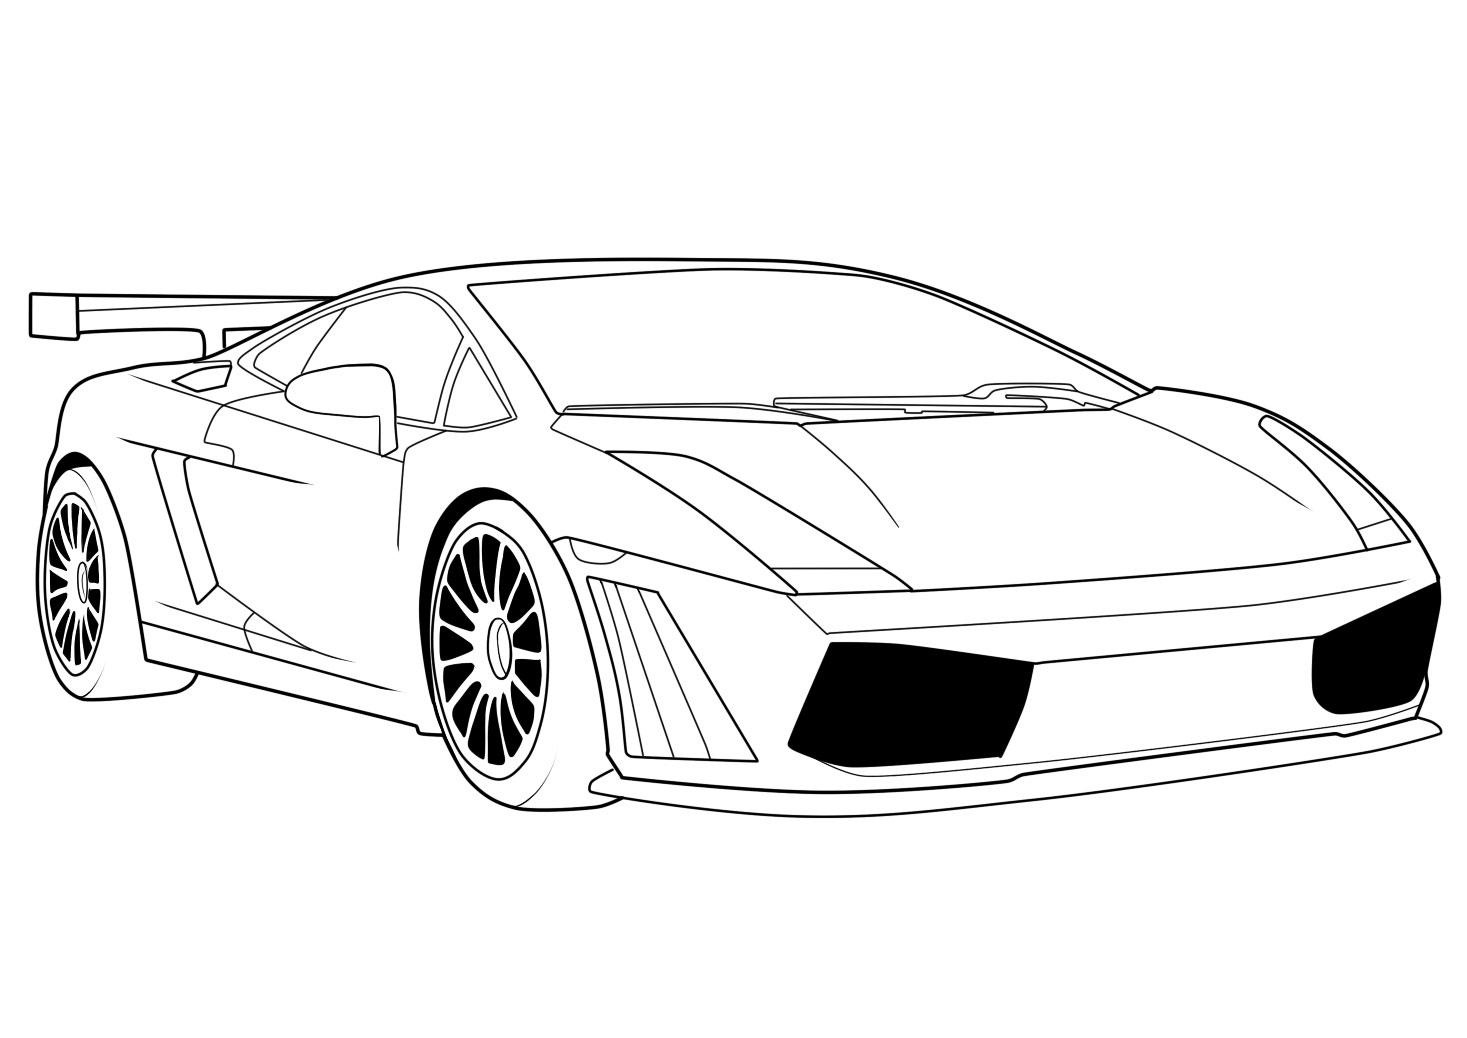 coloring pages to print cars disney cars coloring pages pictures print 476144 cars to coloring pages print